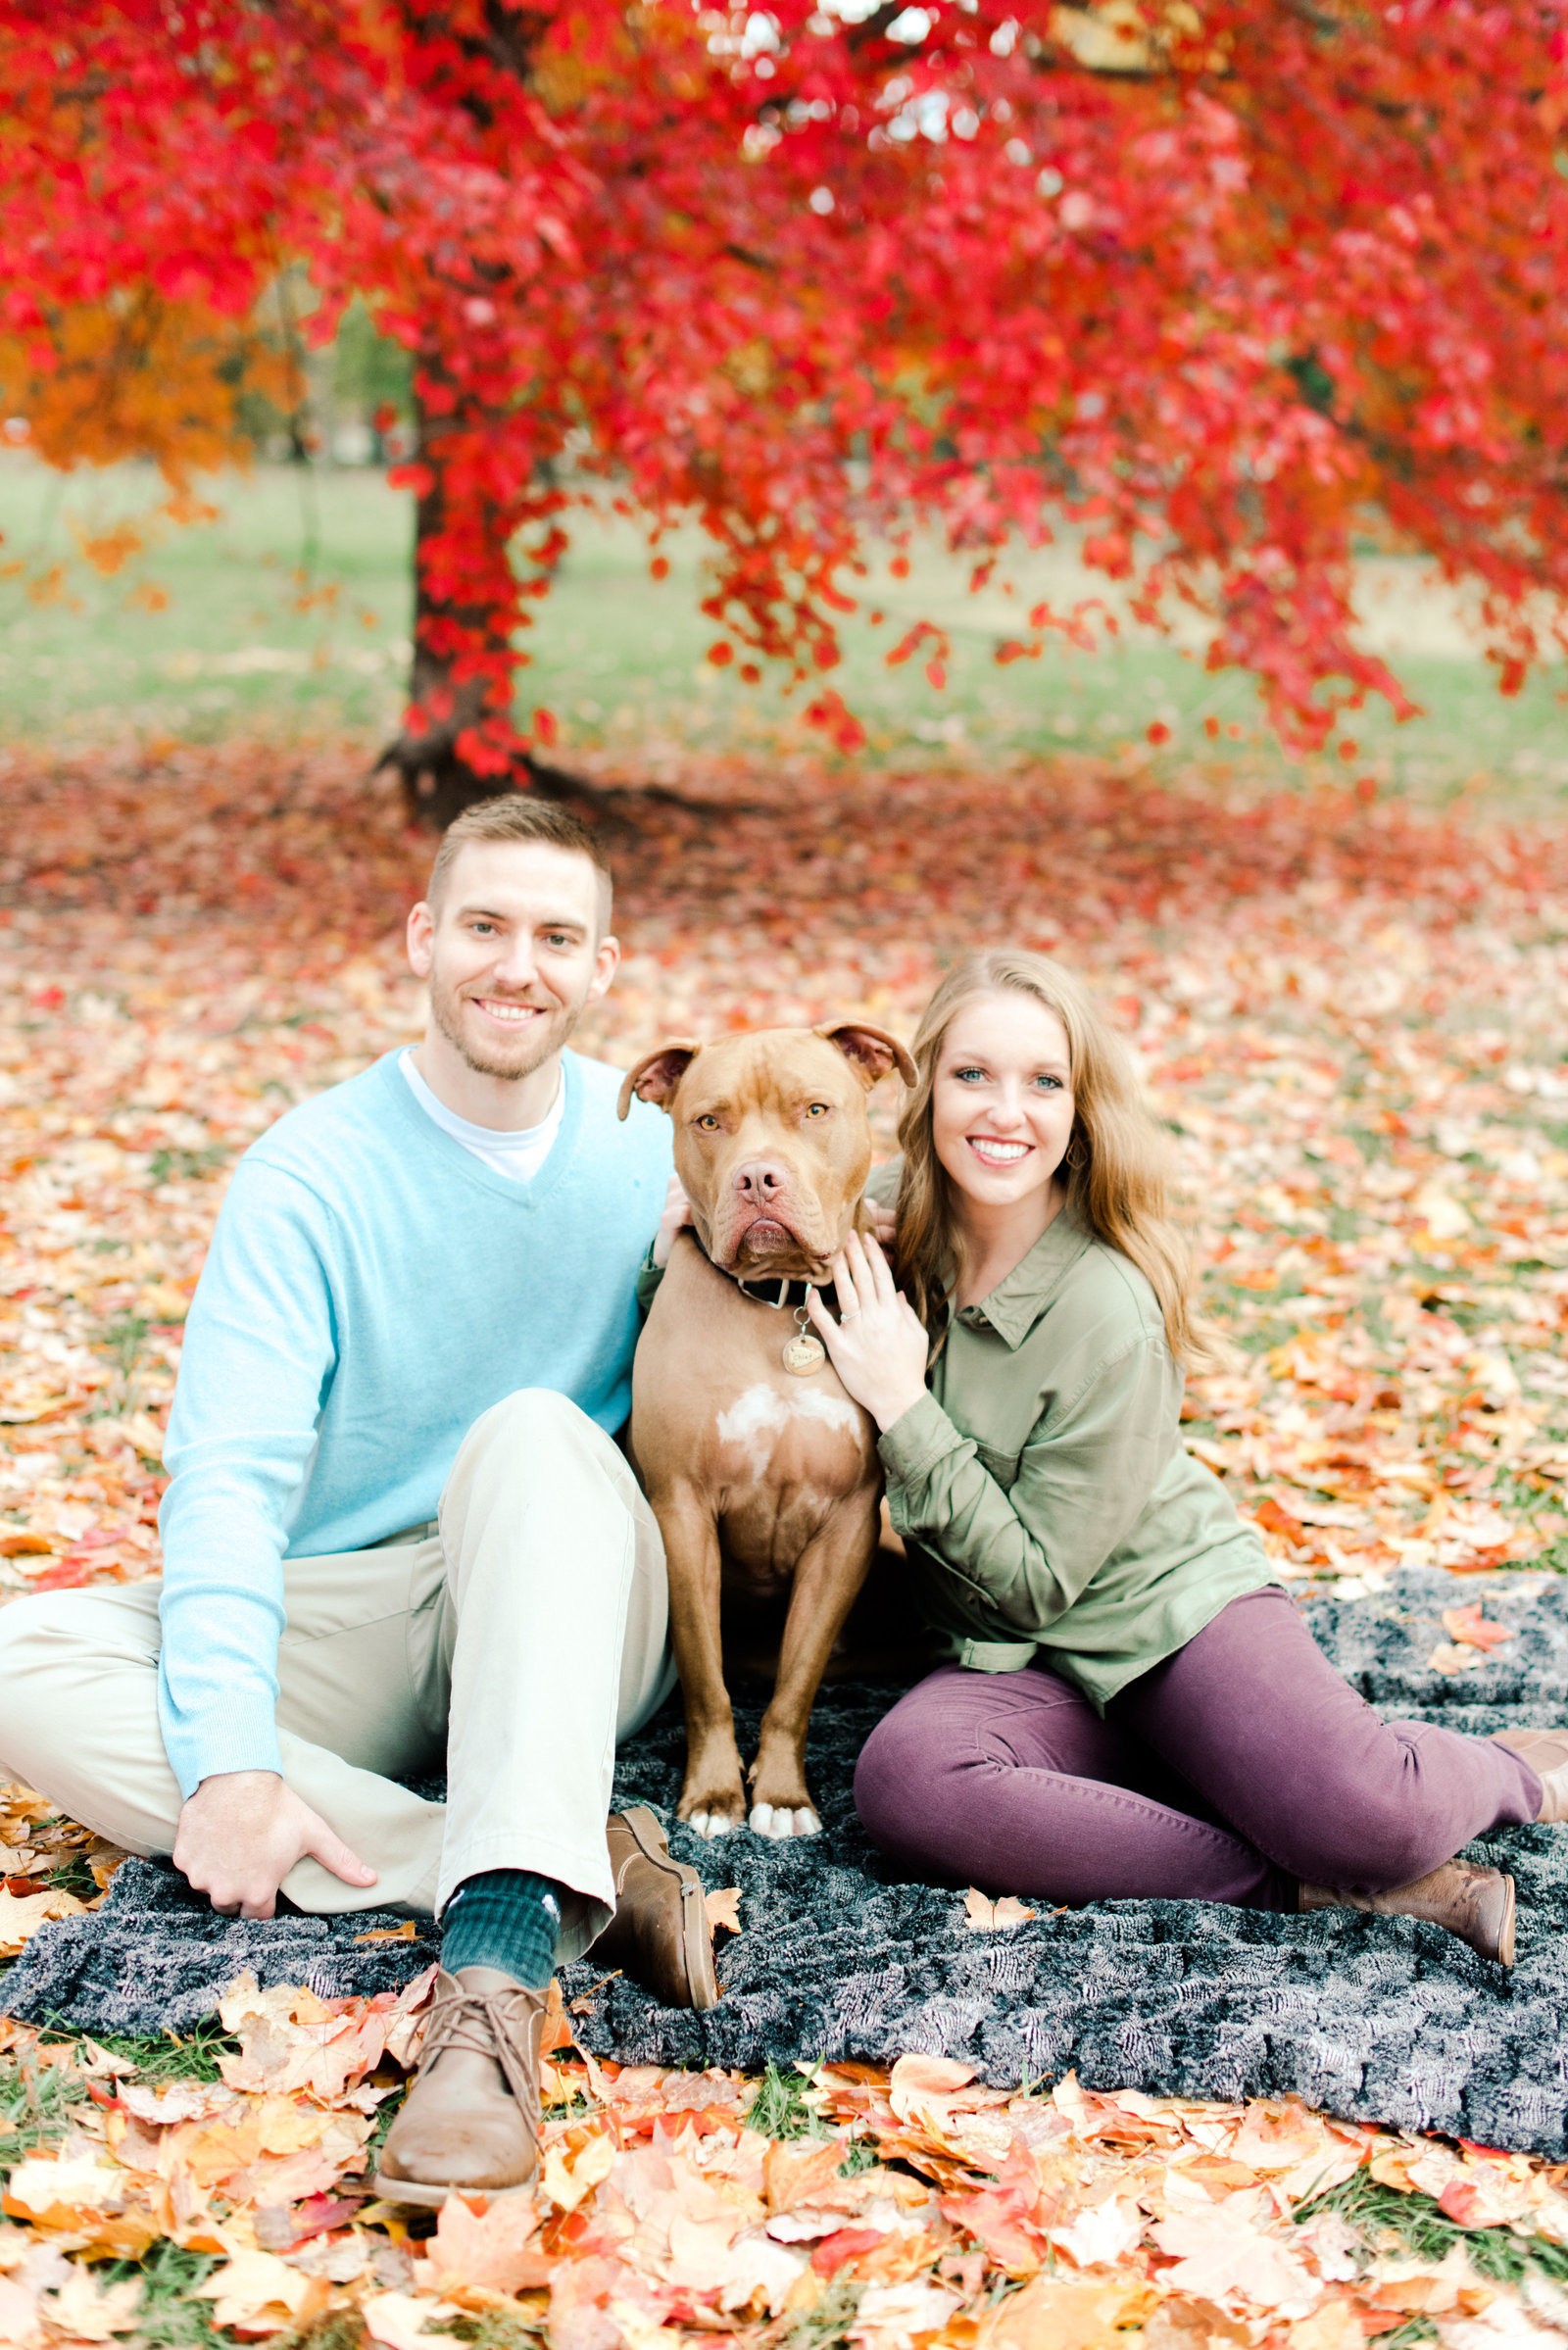 Sunrise_Engagement_Session_at_Loose_Park_Kansas_City_Jadyn+Troy-34